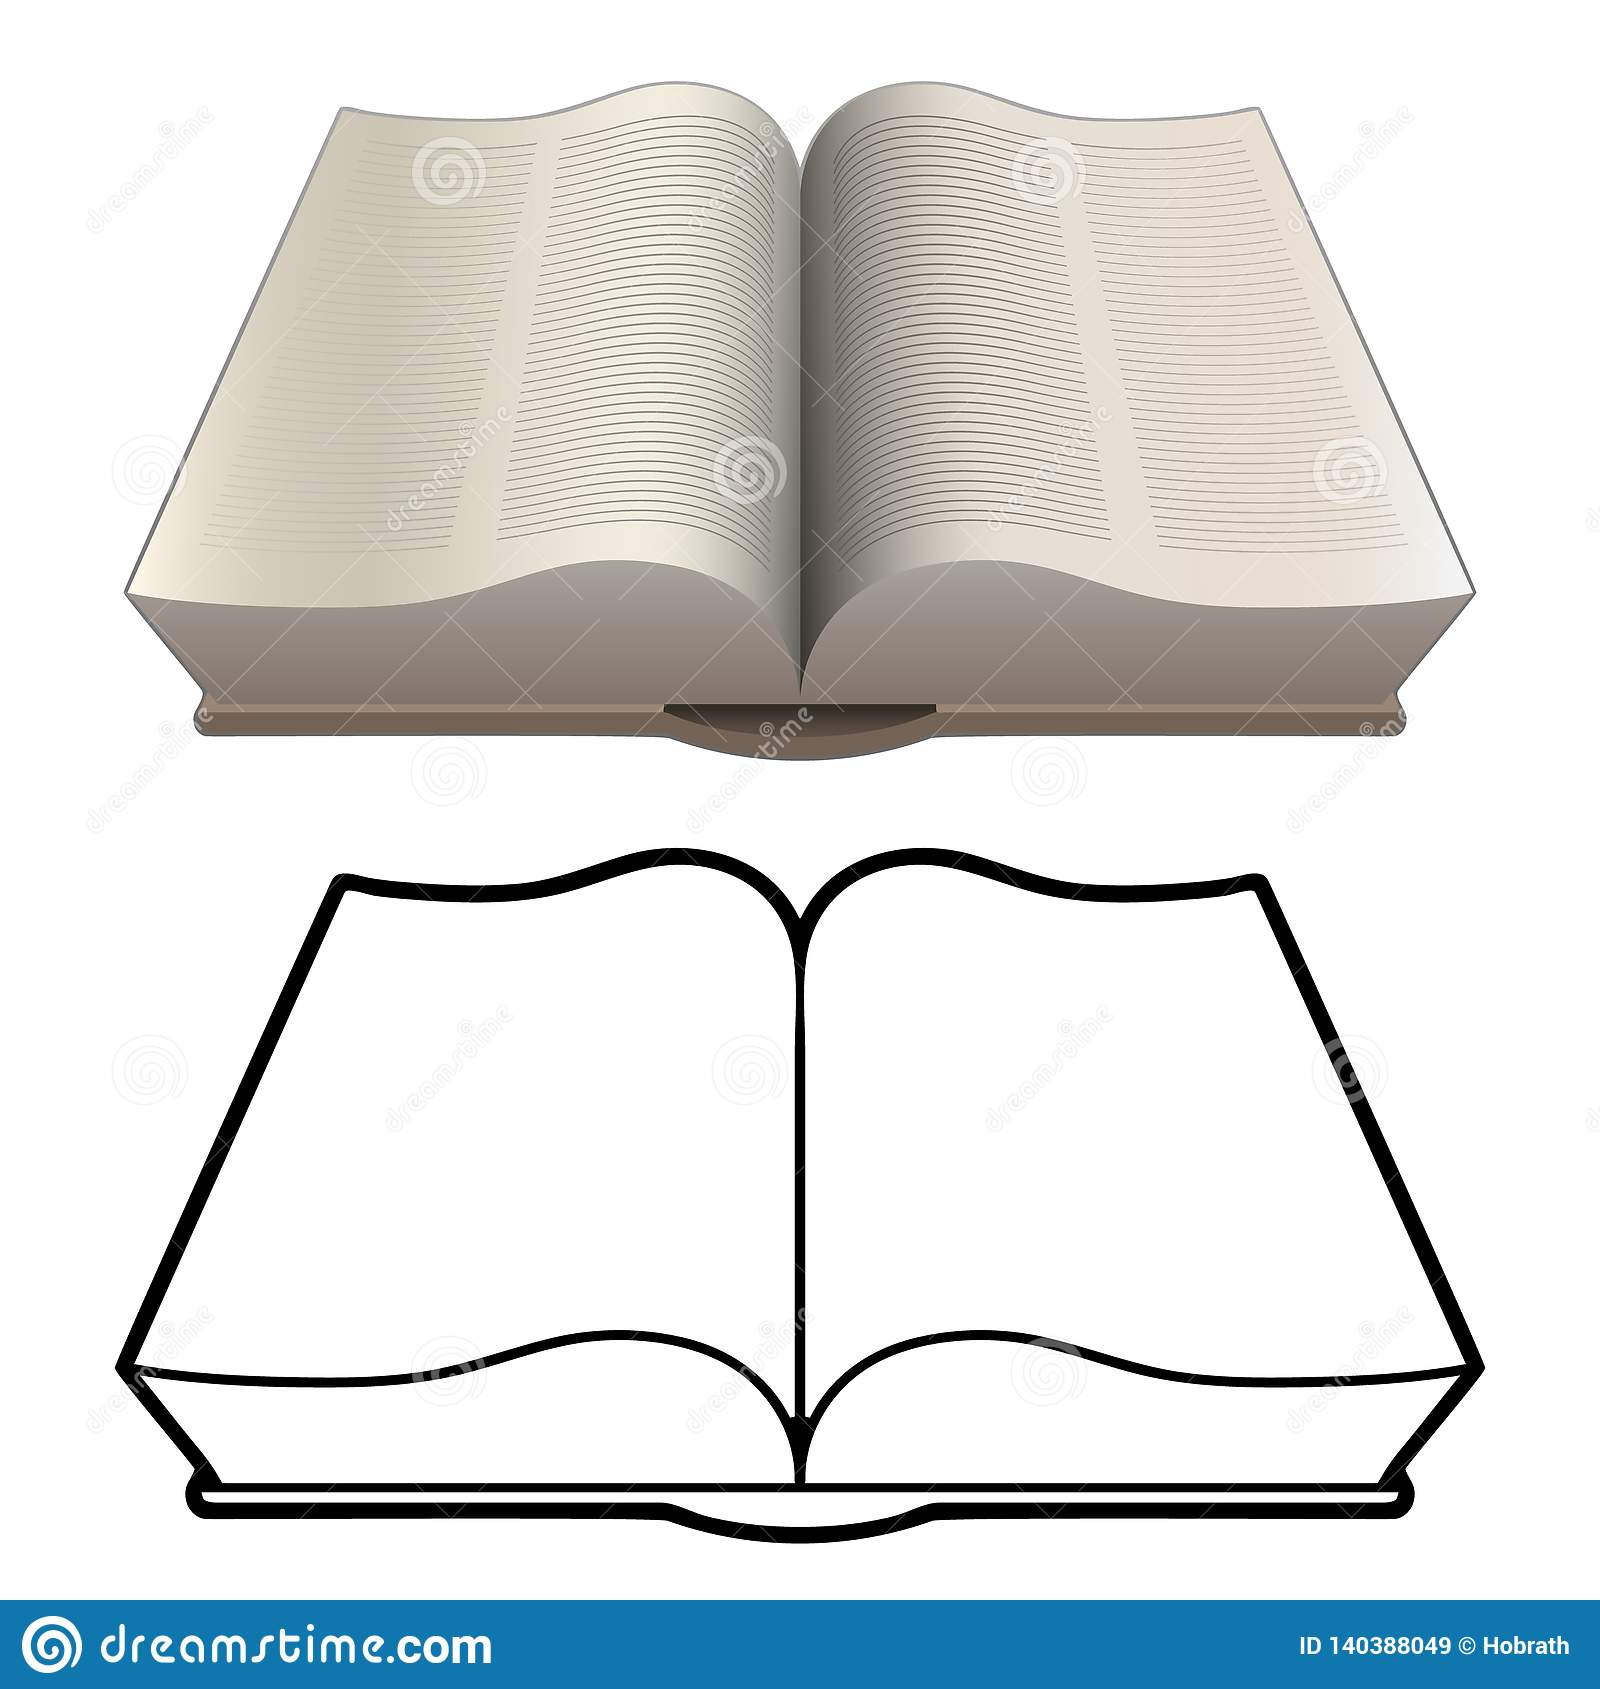 This is a graphic of Irresistible Drawing Of Bible